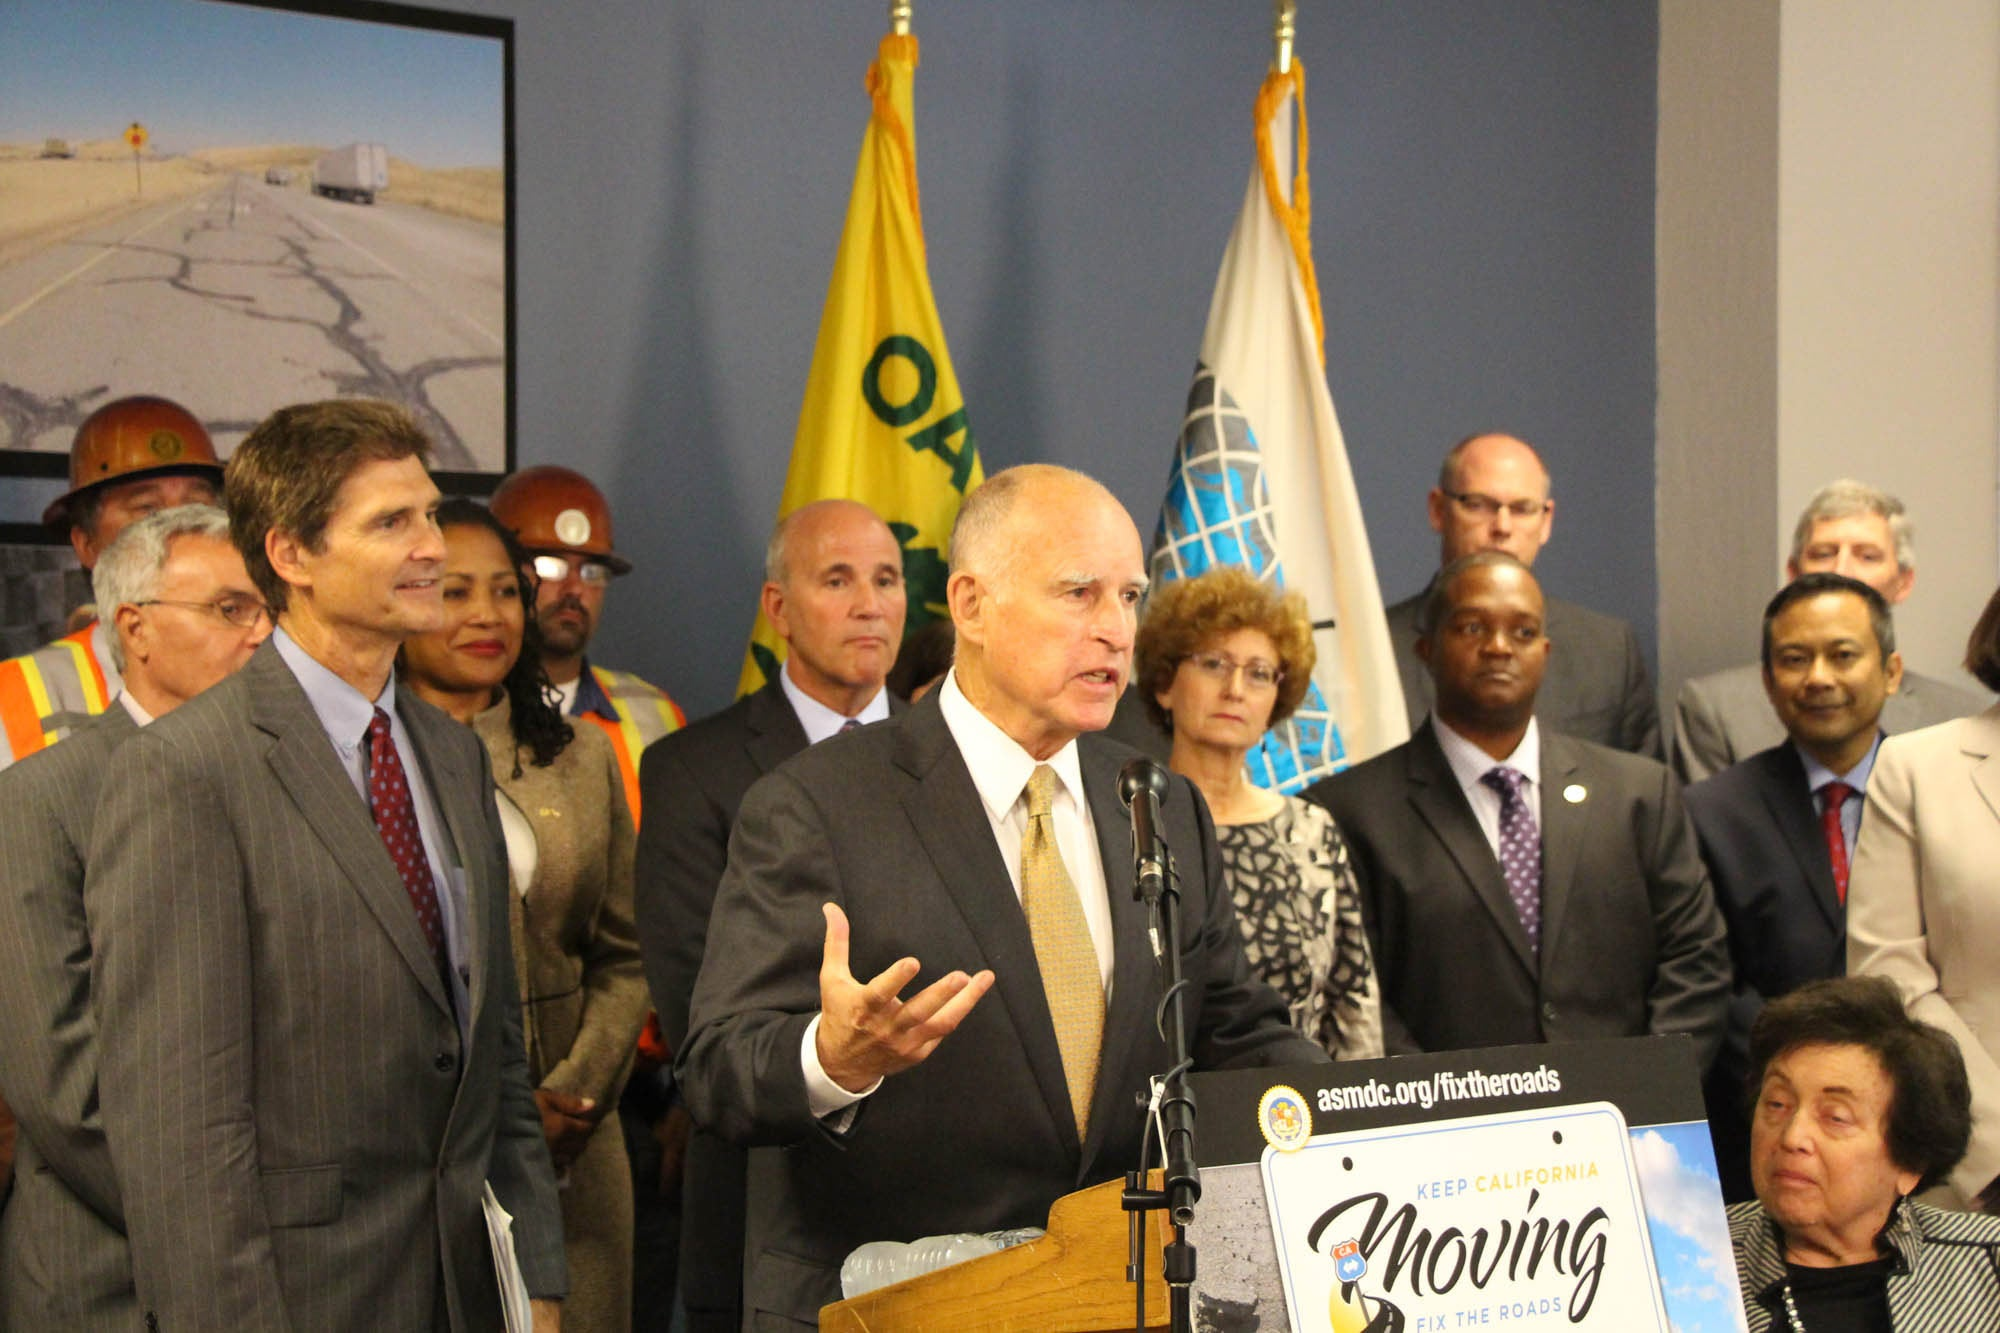 Governor Brown speaks in support of funding plan at the Port of Oakland